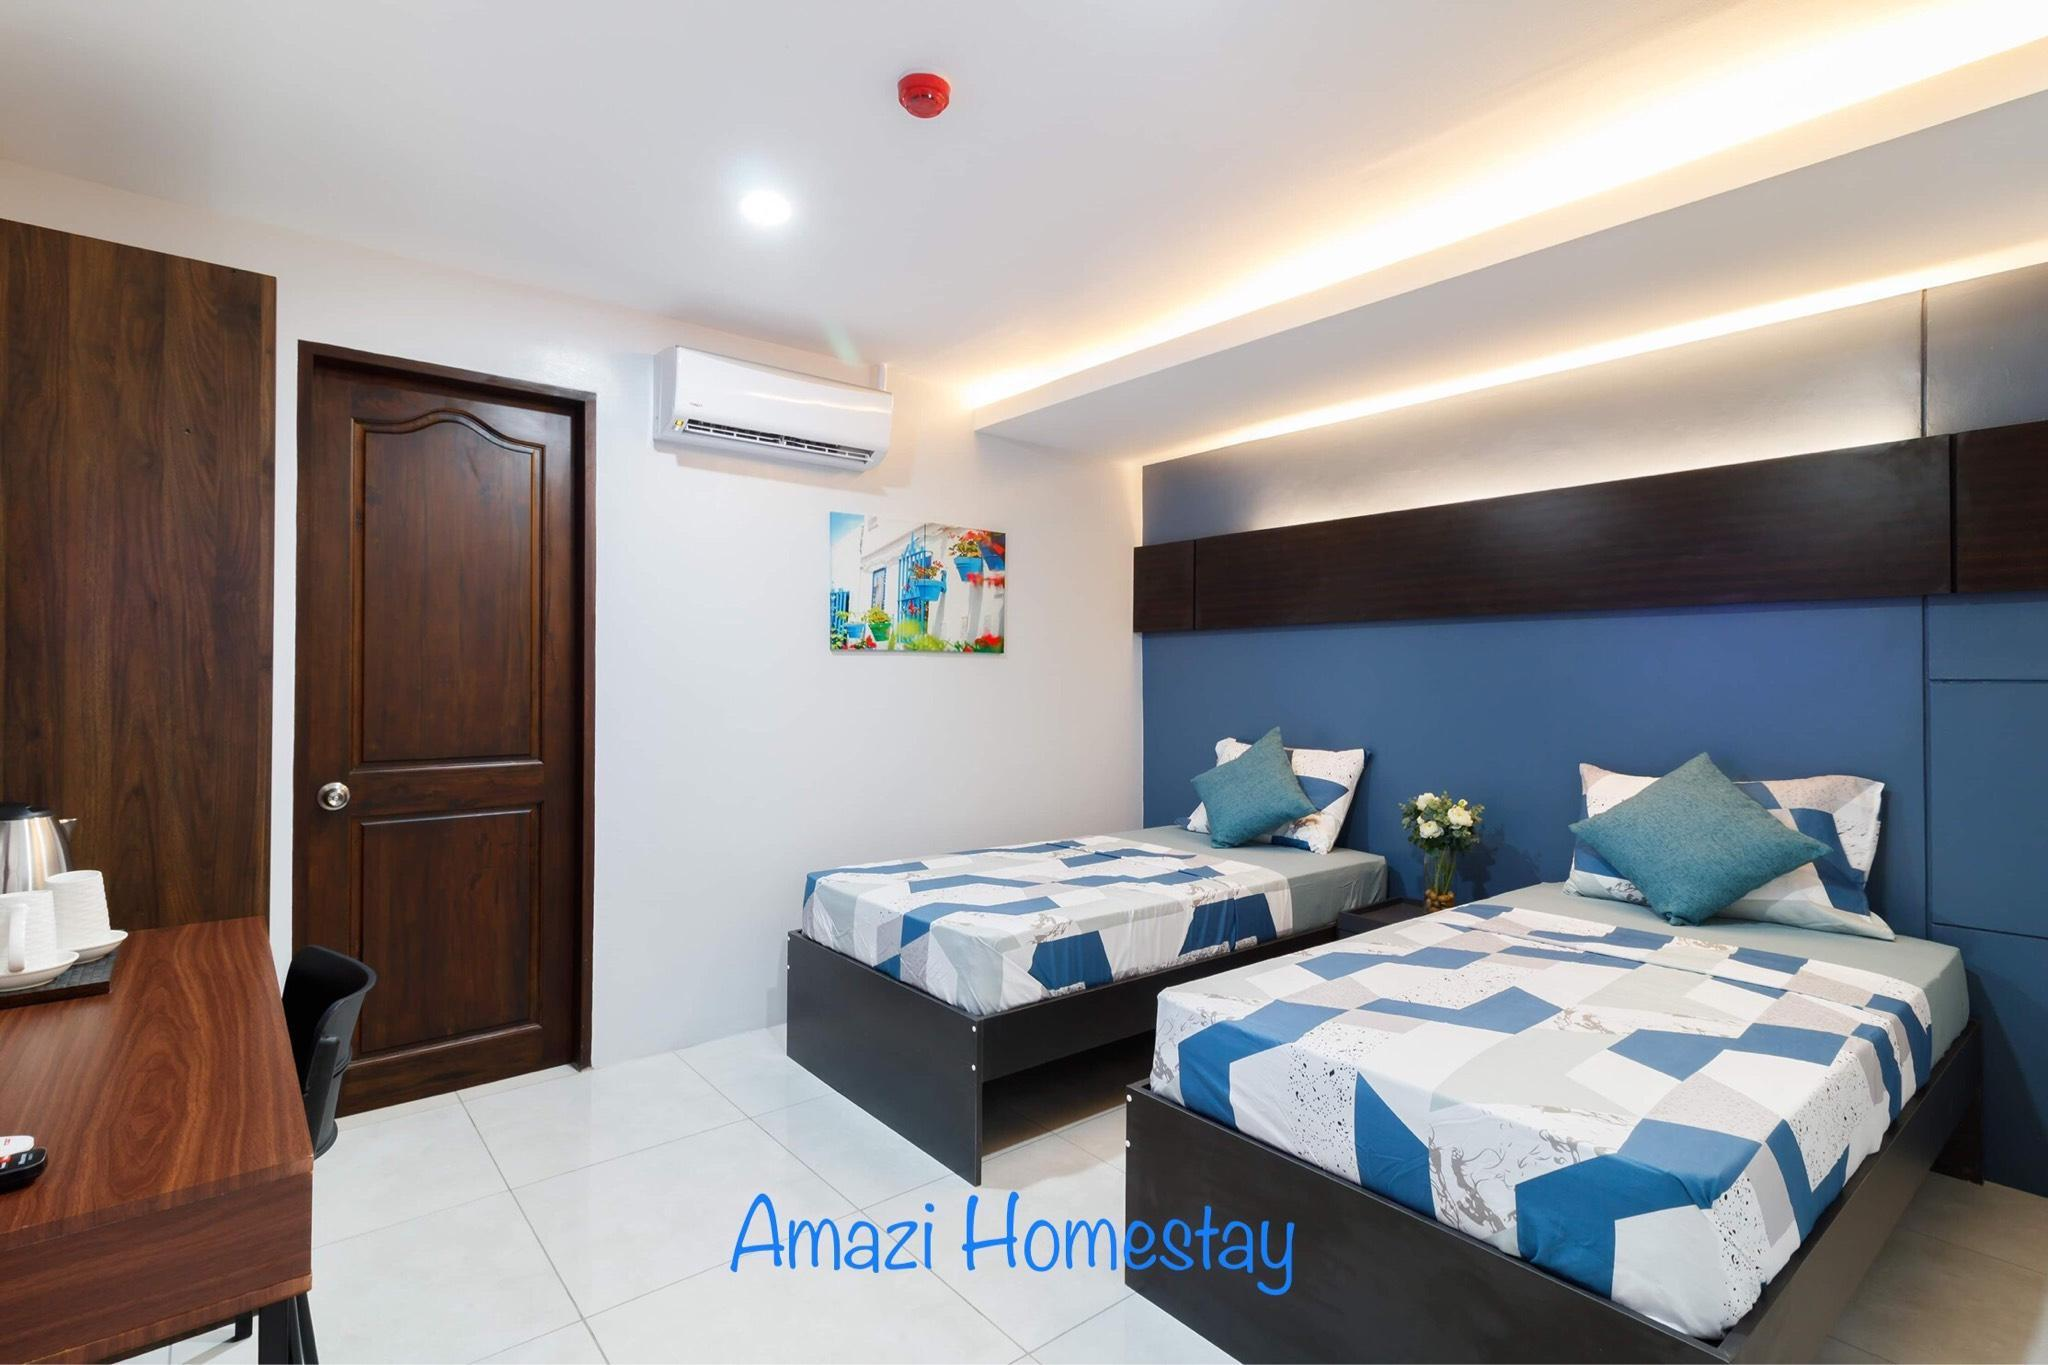 Amazi Homestay Standard Room+Near Mall+27mbps